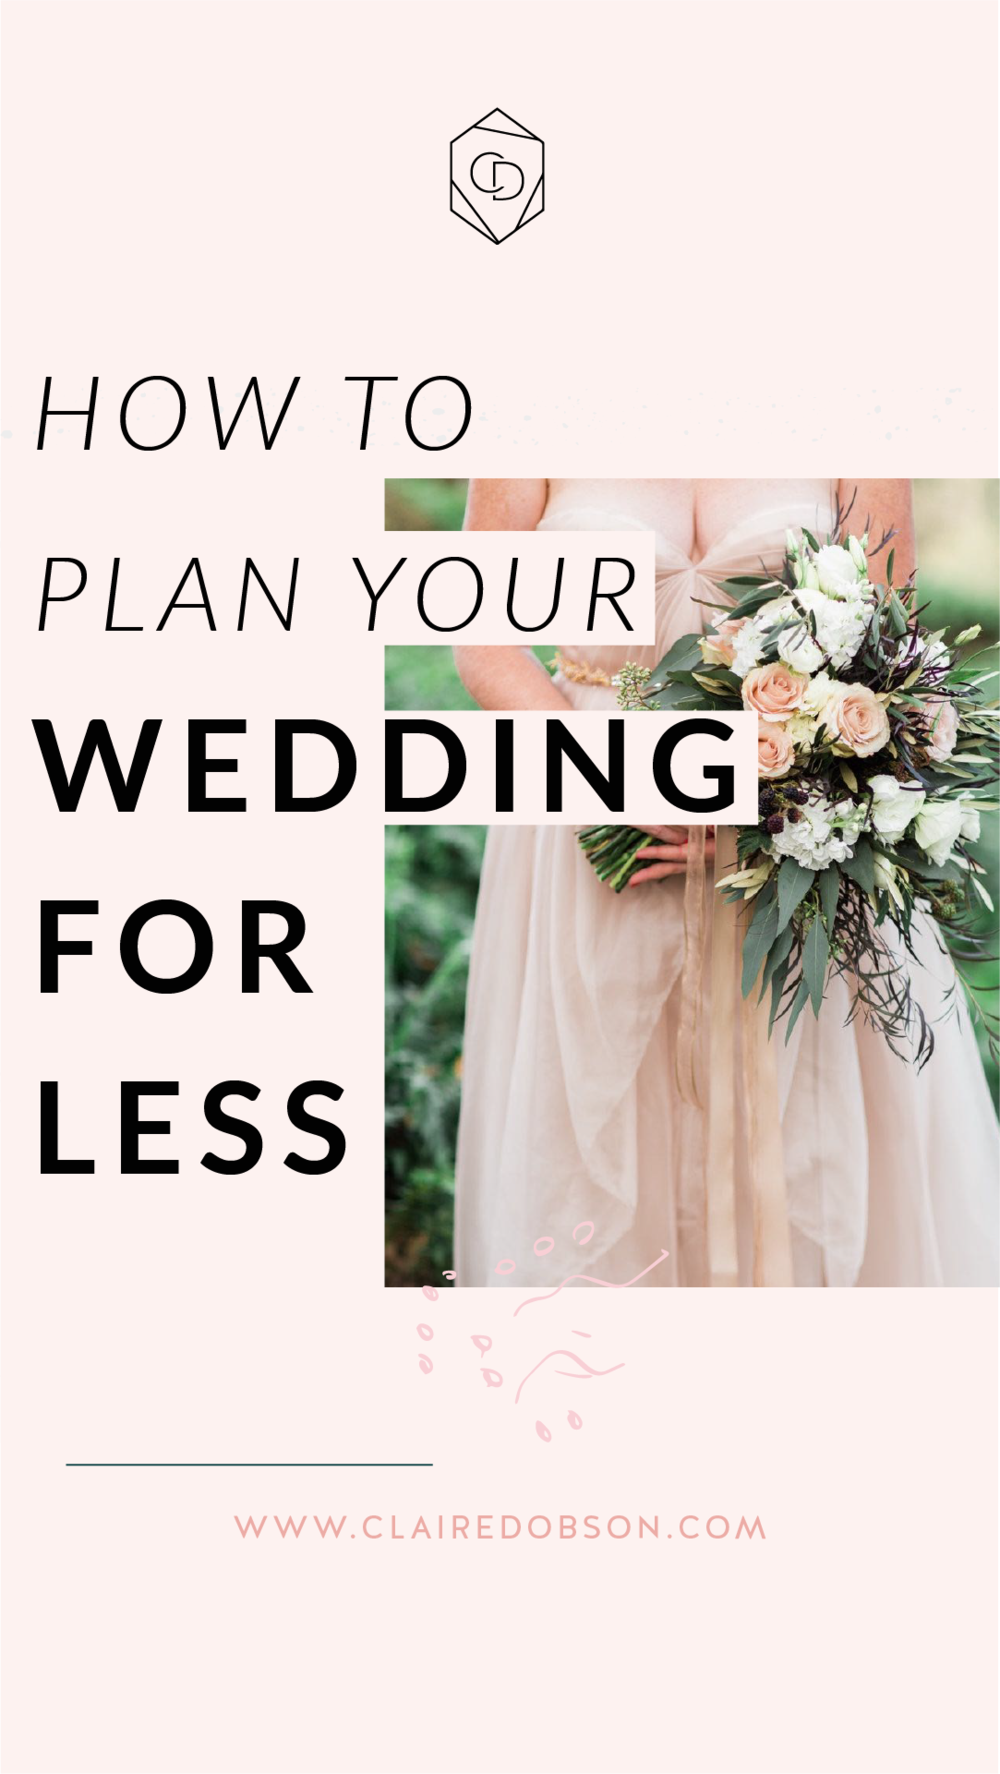 Save money on your wedding day by checking out these amazing budget wedding ideas that will still leave your guests breathless! #weddingplanning #weddingideas #weddingtips #budgetweddingideas #moneysavingtips #frugalliving